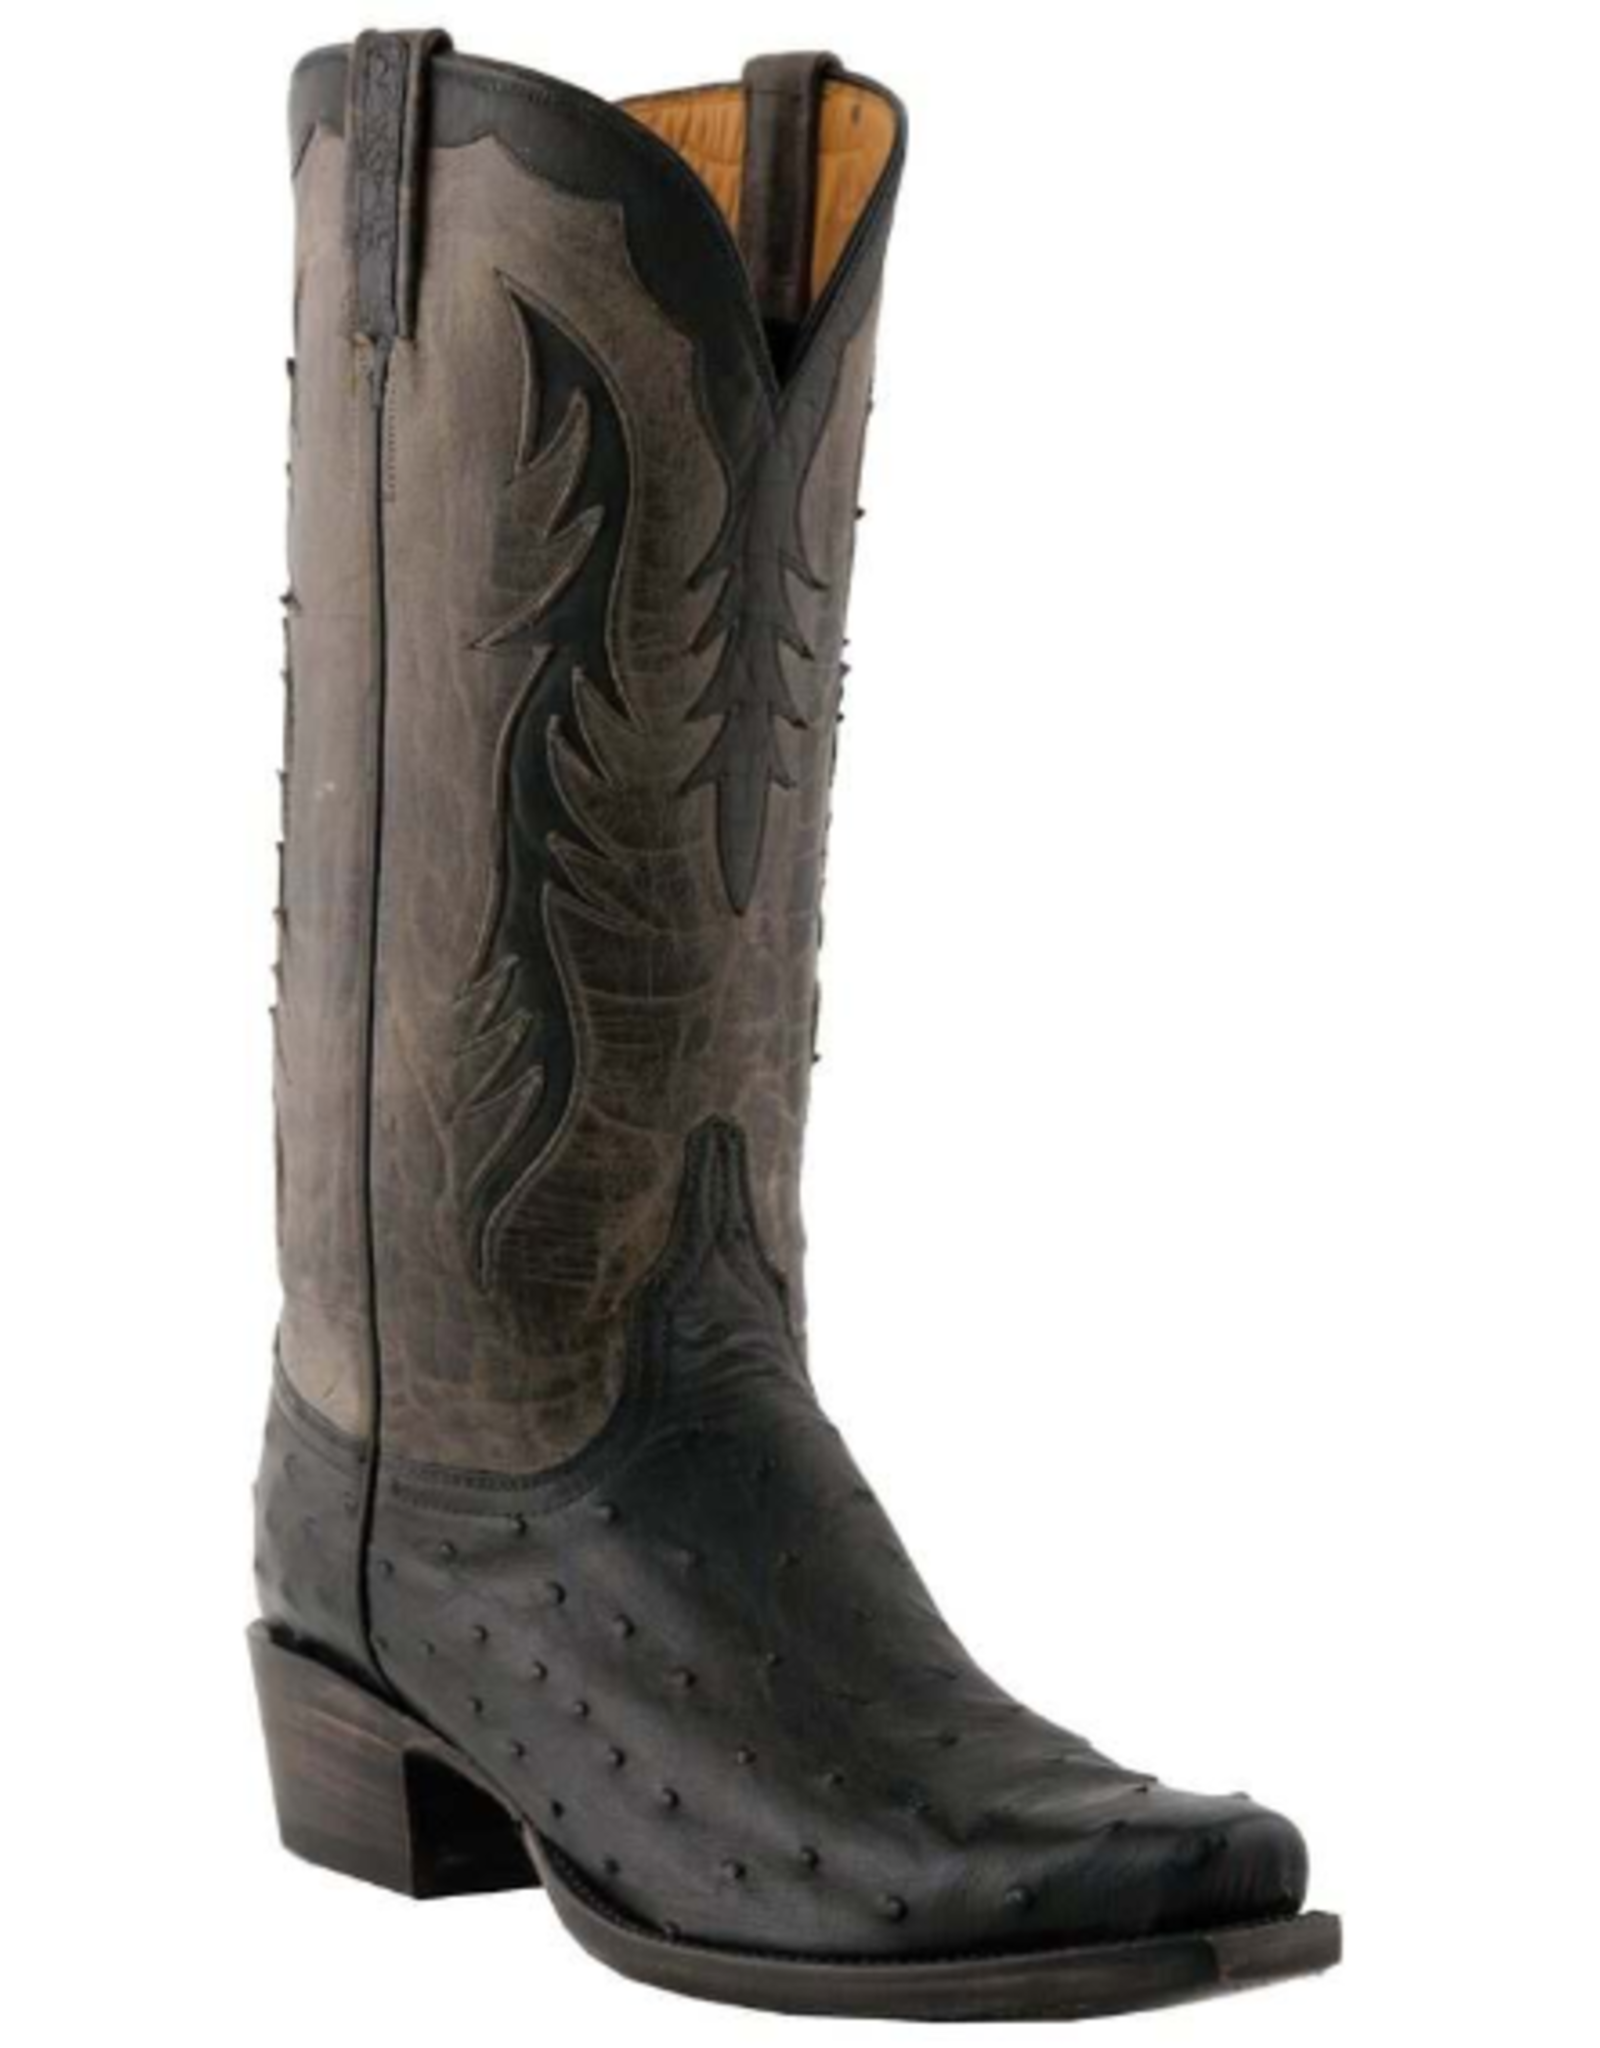 Lucchese Lucchese Classic Full Quill Ostrich Boots, 9.5D